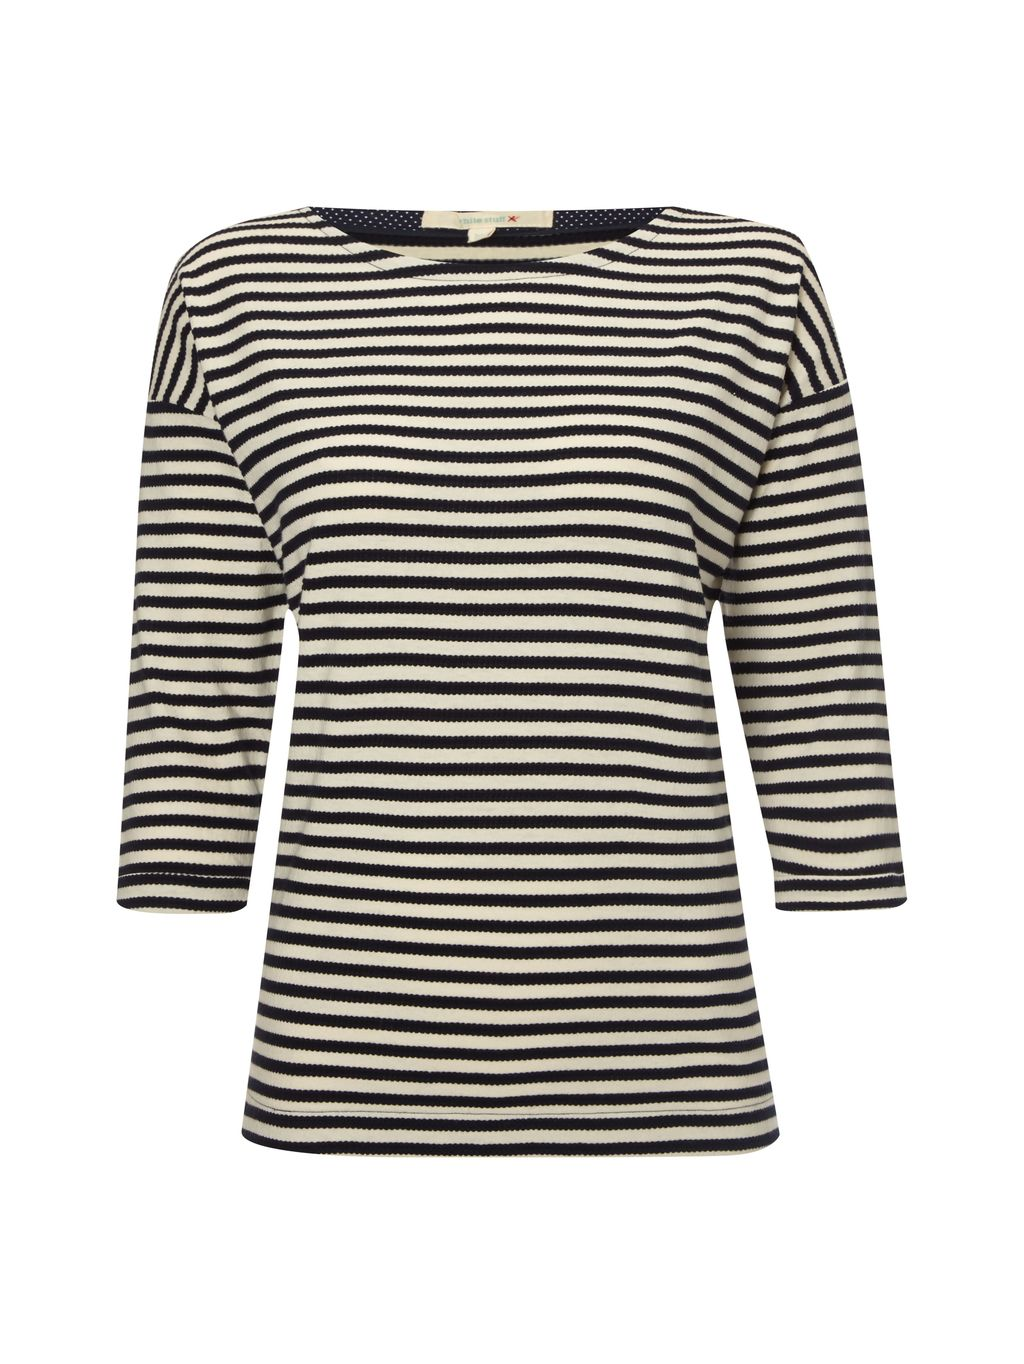 Cherry Stripe Jersey Tee, Navy - sleeve style: dolman/batwing; pattern: horizontal stripes; style: t-shirt; predominant colour: navy; secondary colour: stone; occasions: casual; length: standard; fibres: cotton - 100%; fit: straight cut; neckline: crew; sleeve length: 3/4 length; pattern type: fabric; pattern size: standard; texture group: jersey - stretchy/drapey; season: s/s 2016; wardrobe: basic